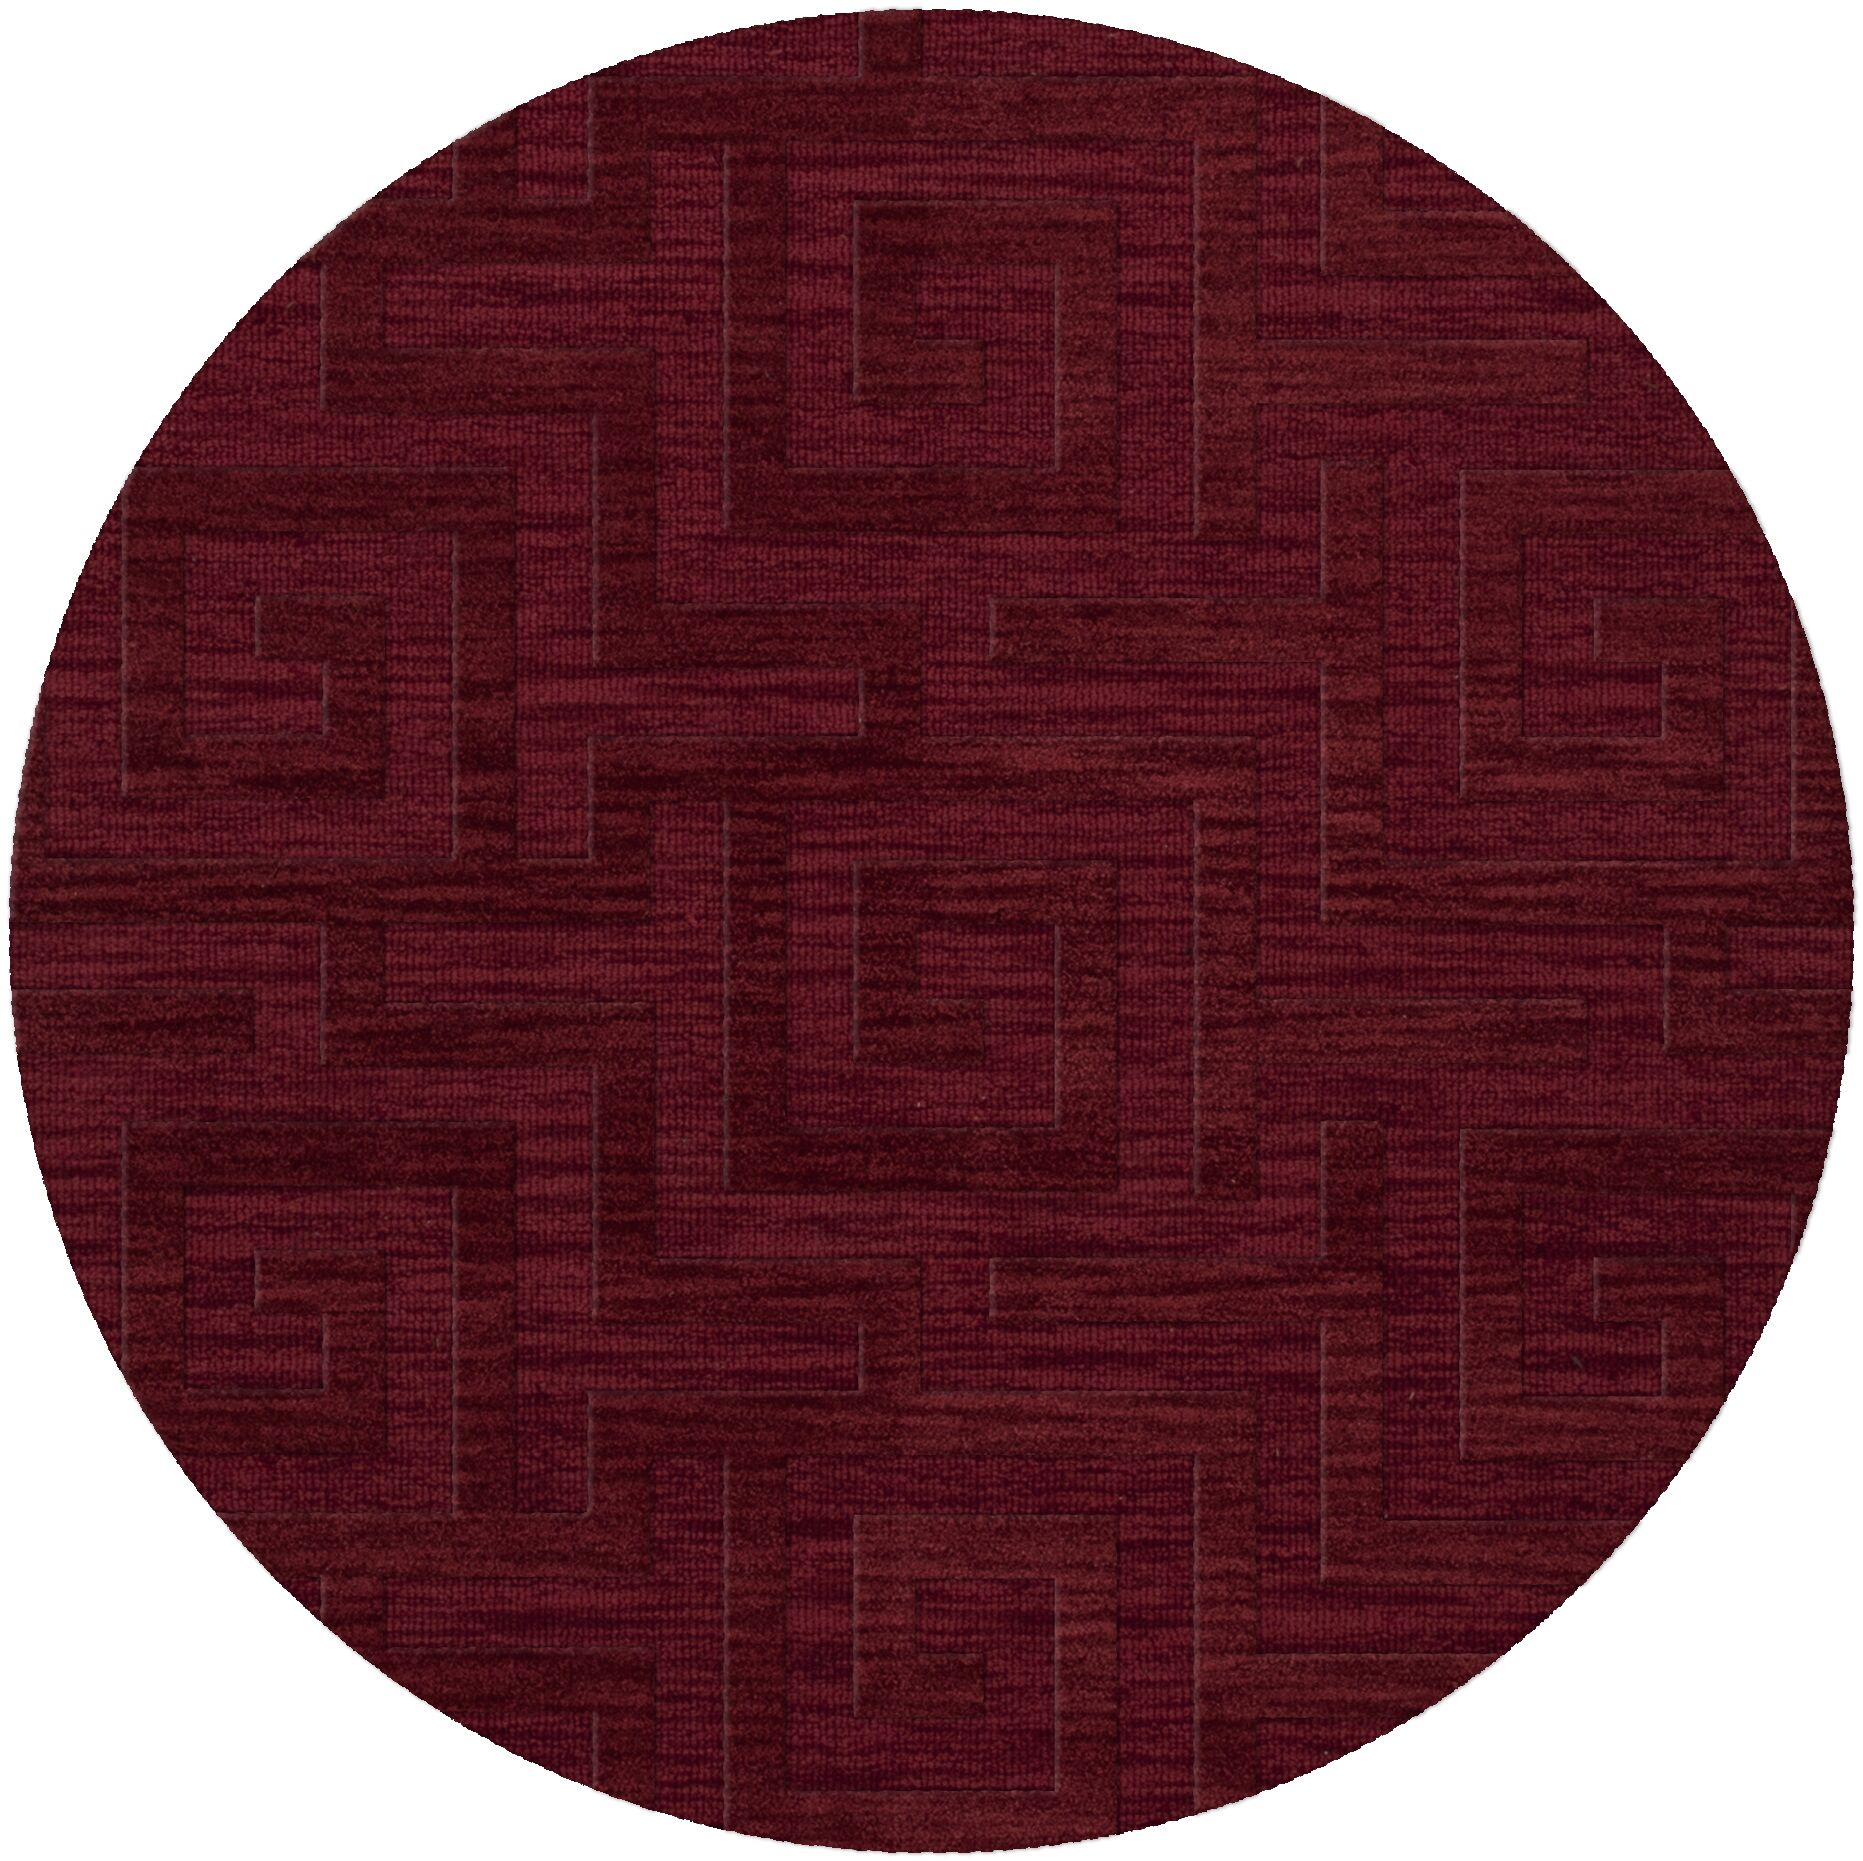 Dover Tufted Wool Rich Red Area Rug Rug Size: Round 10'